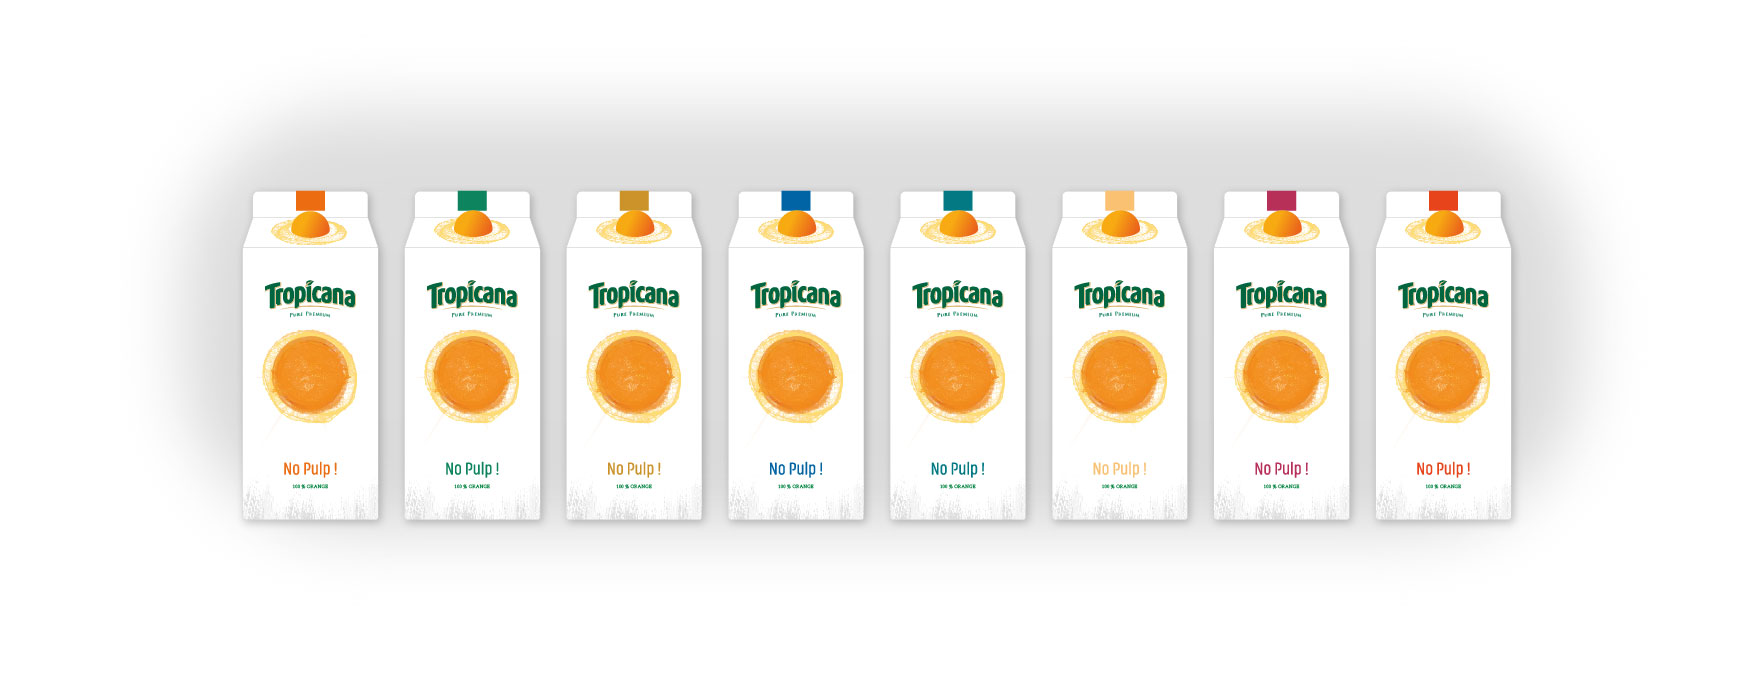 Tropicana Propositions pack-05